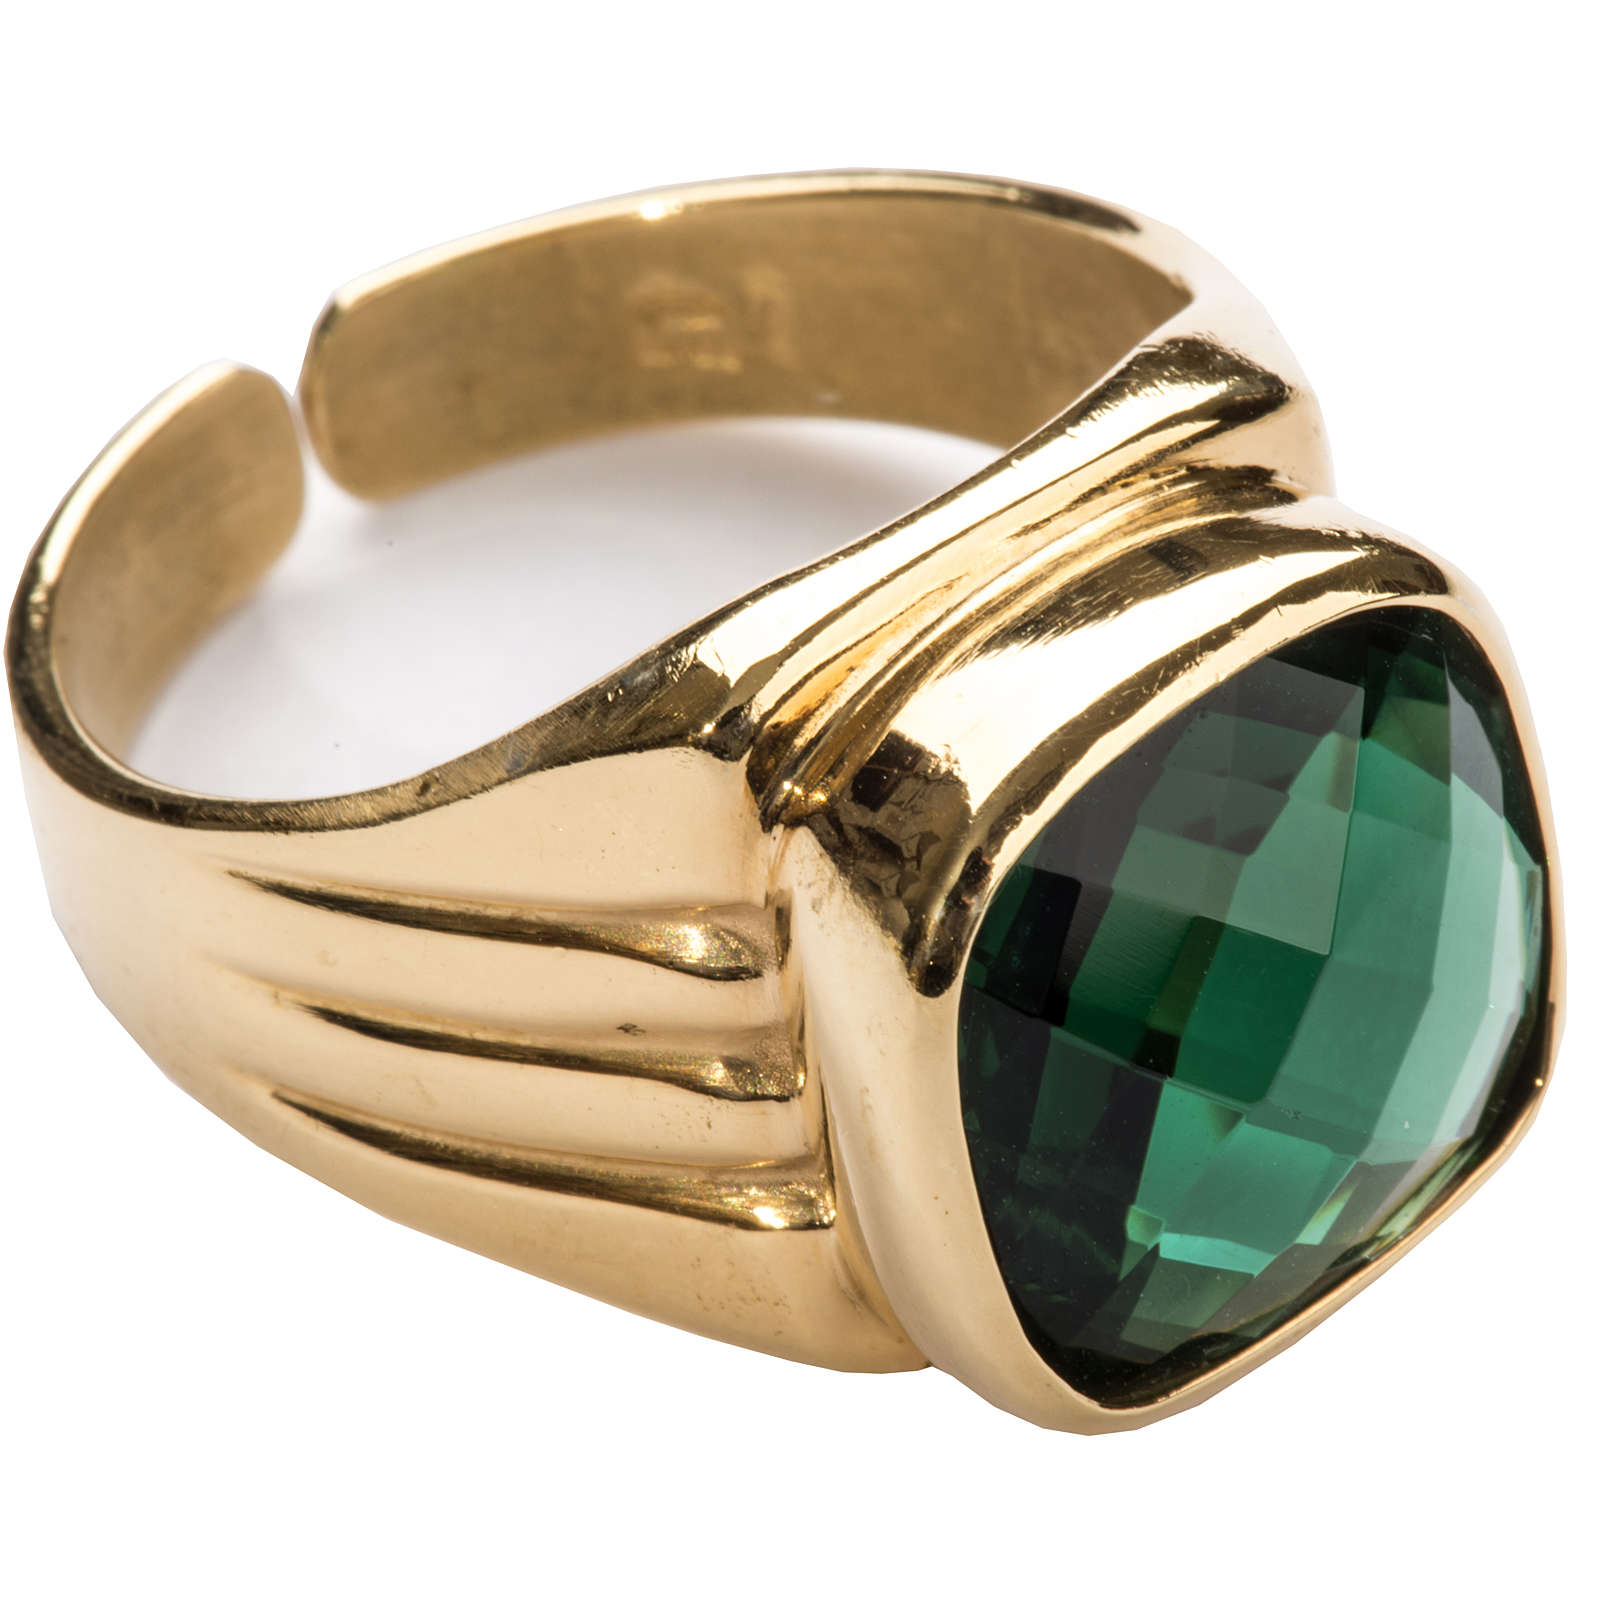 Bishop Ring in silver 925 with green quartz 3